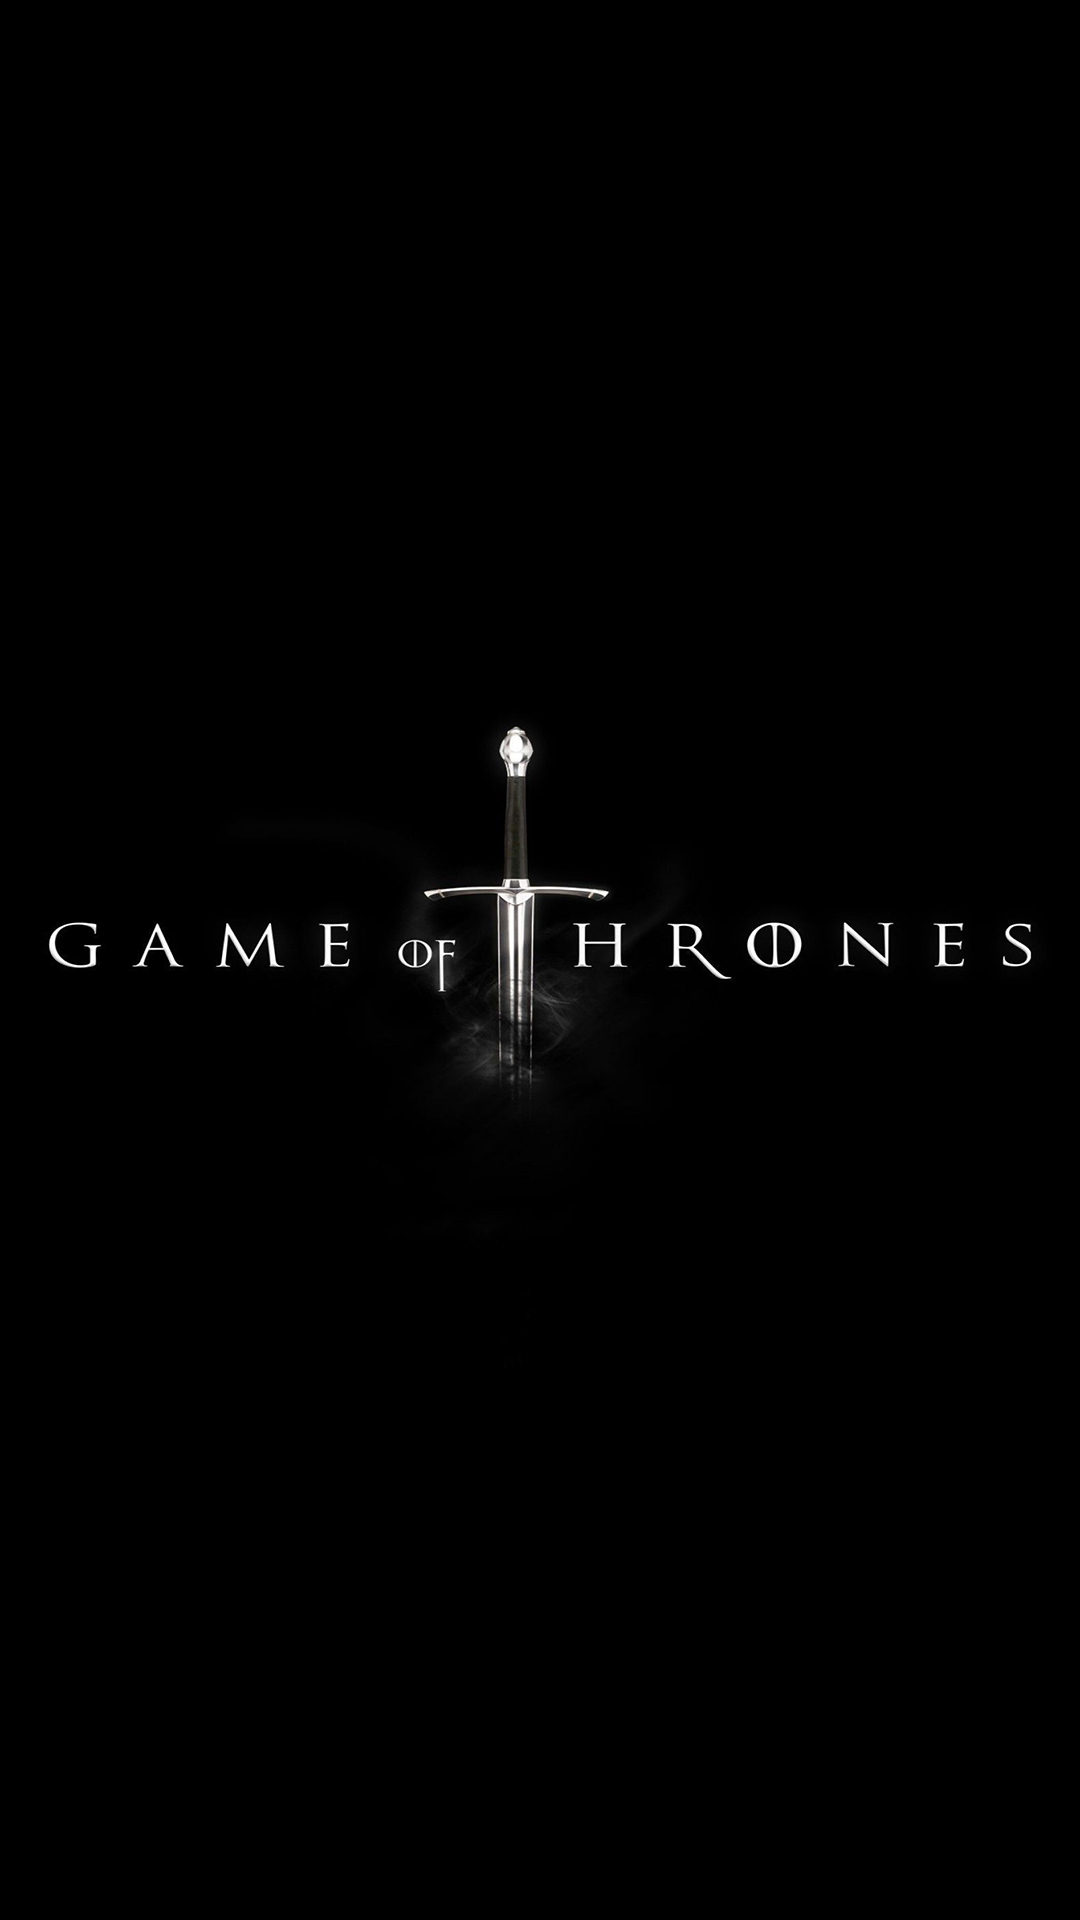 Game Of Thrones Iphone Wallpaper Hd